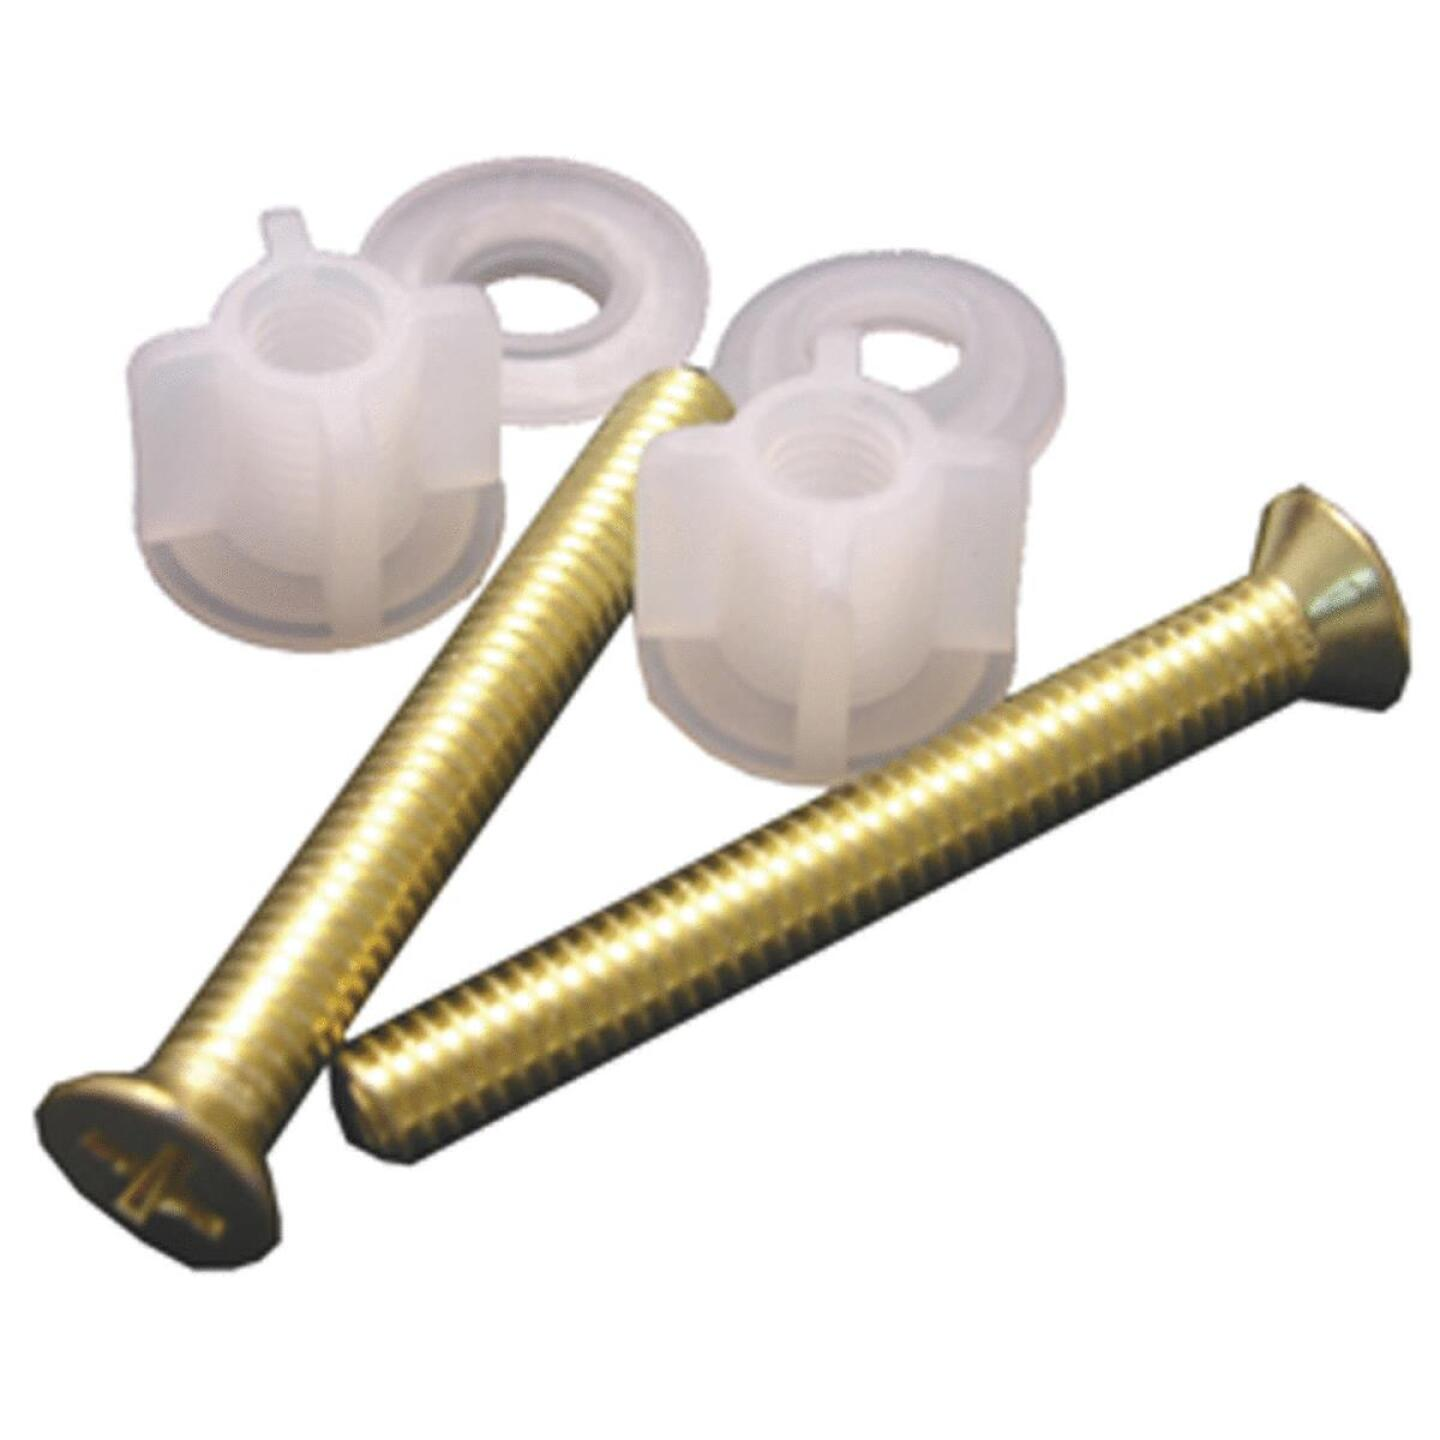 """Lasco 3/8"""" x 2-1/2"""" Polished Brass Metal Toilet Seat Bolt, Includes Nuts and Washers Image 1"""